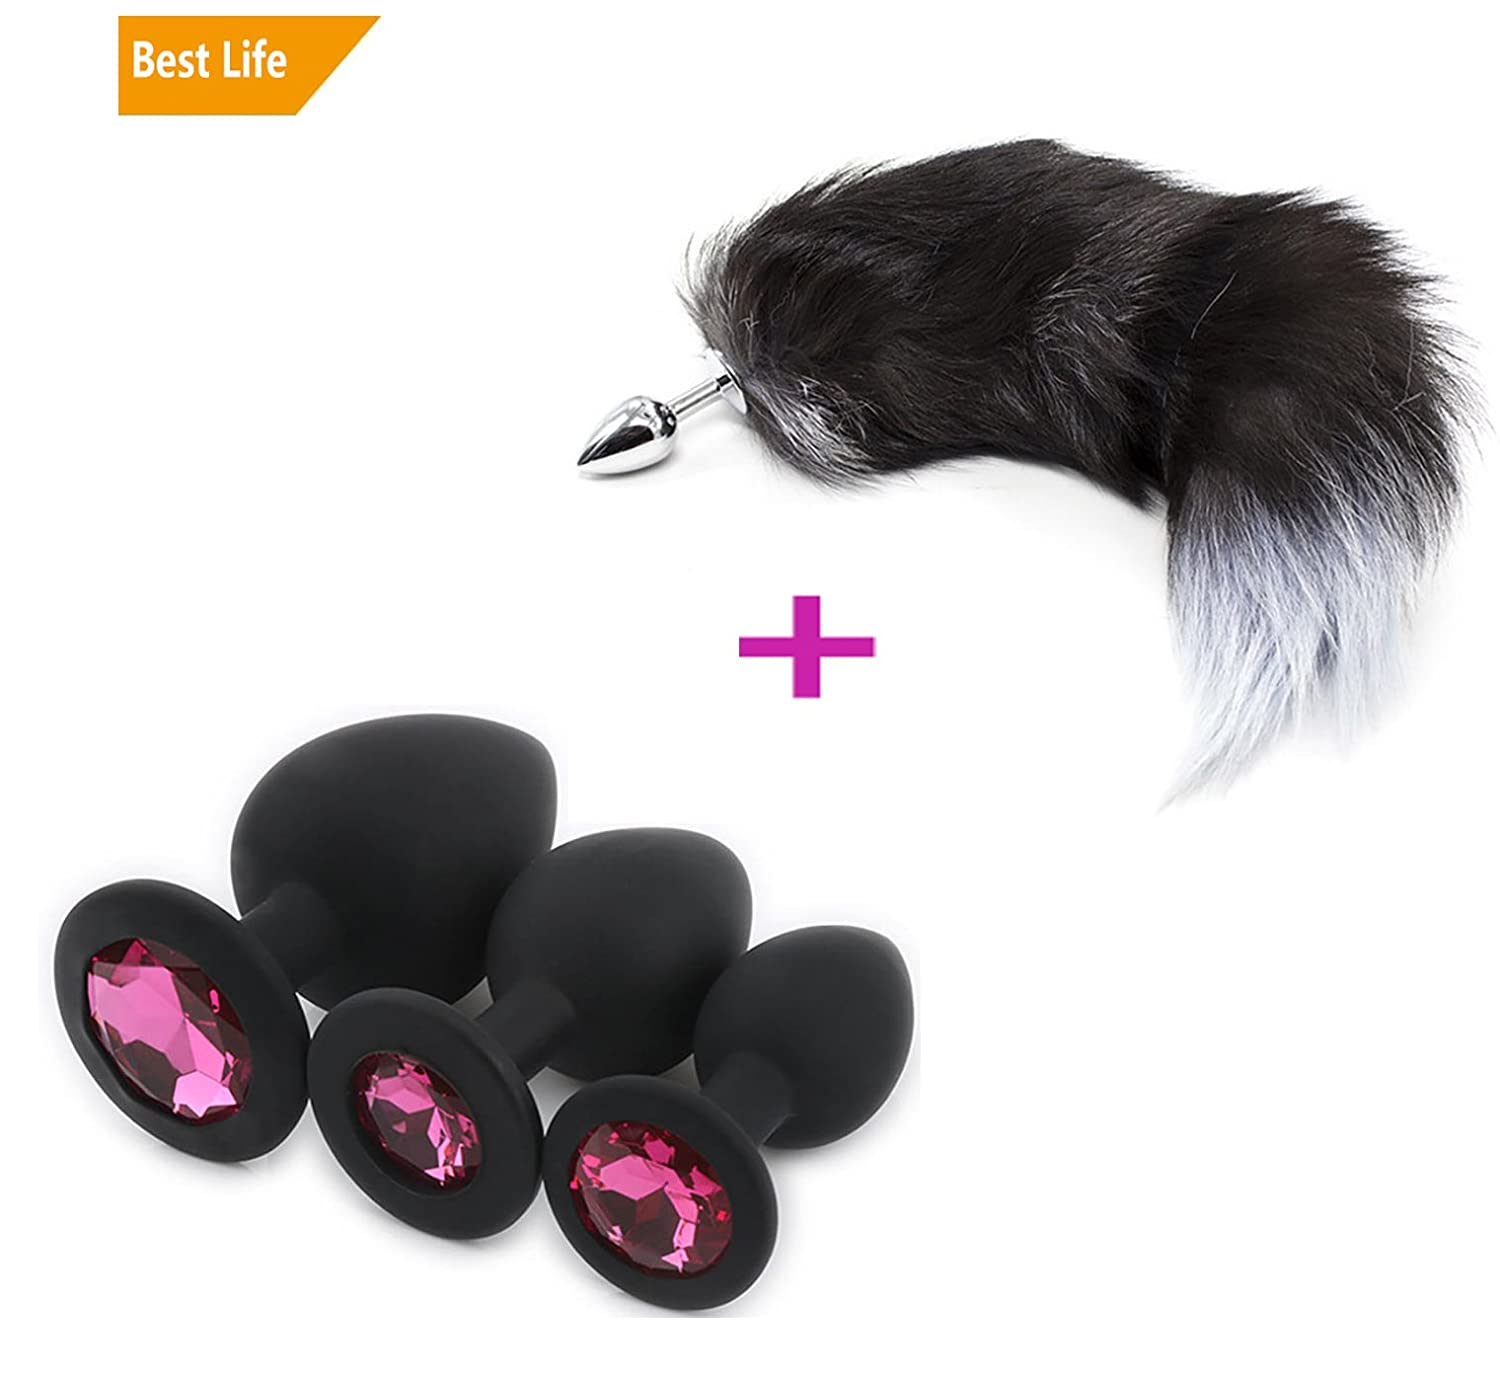 3 Pcs 3 Size Plugs Set with Fox Tail Trainer Toys for You and Your Lover (B) Baumor